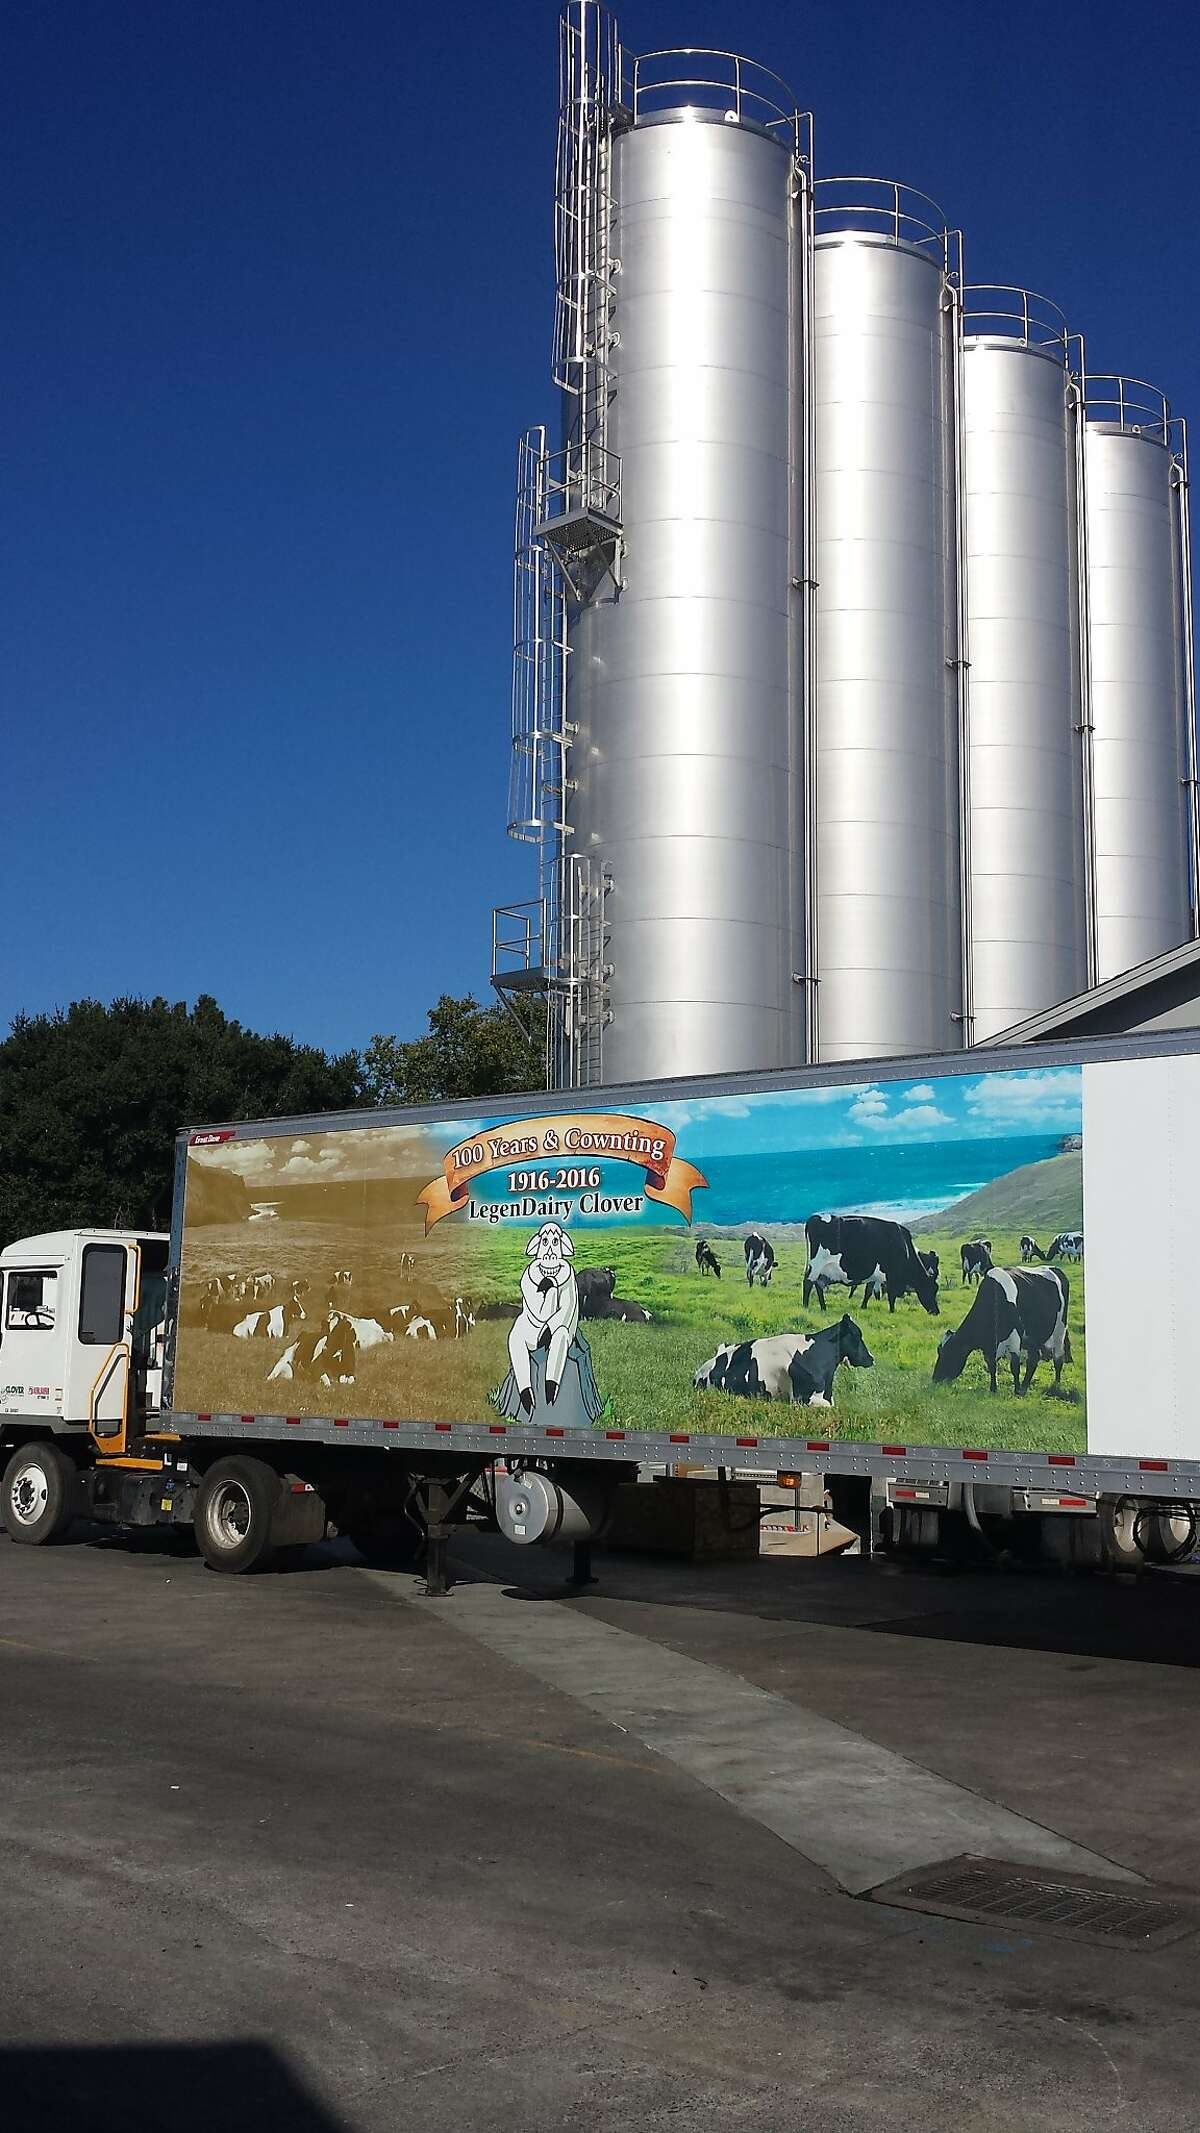 At Clover, different silos contain different feeds, including non-GMO feed.